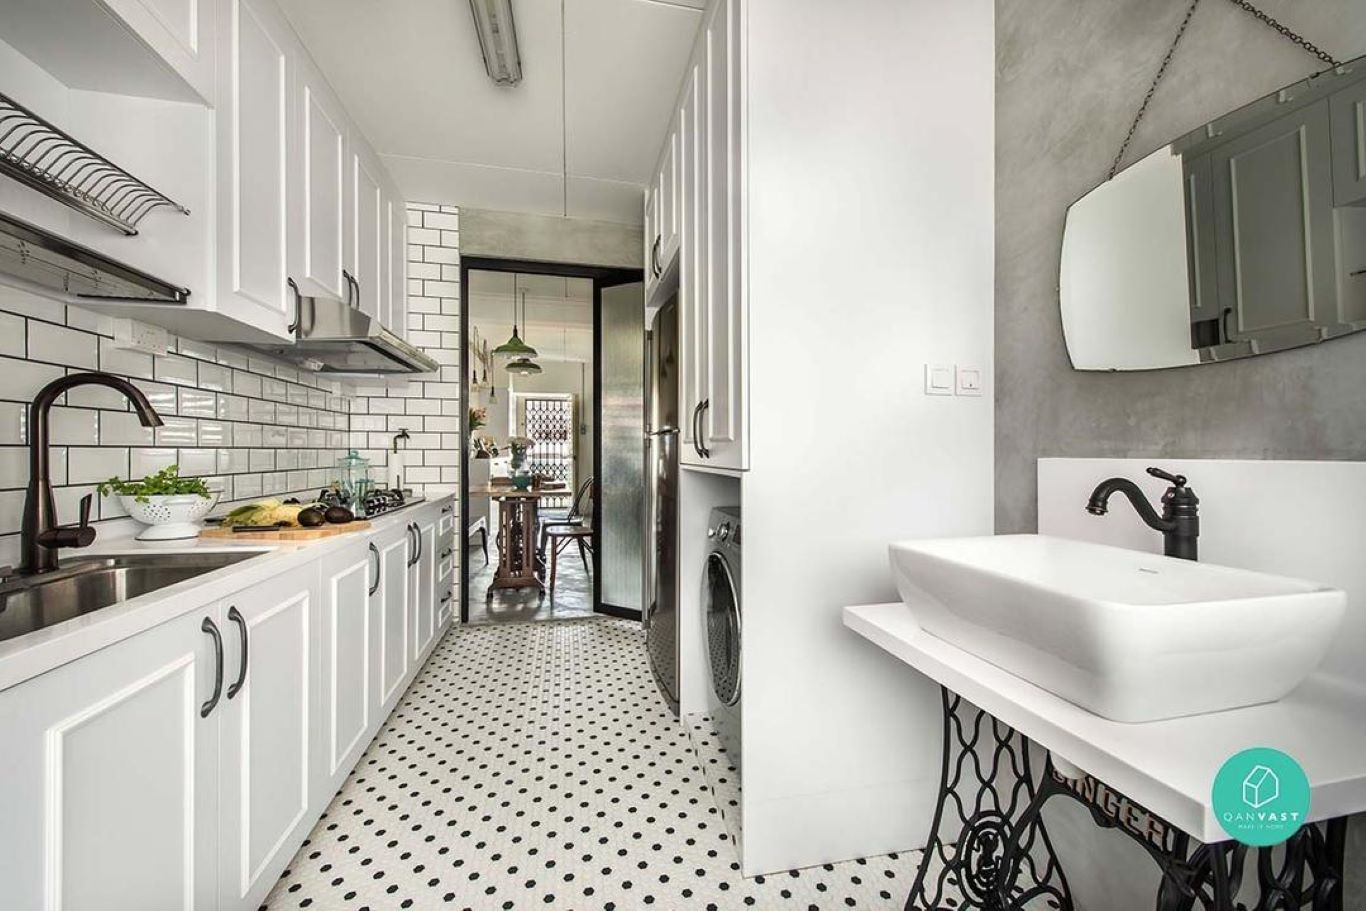 Modern fixtures complemented with 60s polka-dotted mosaic flooring in a galley kitchen